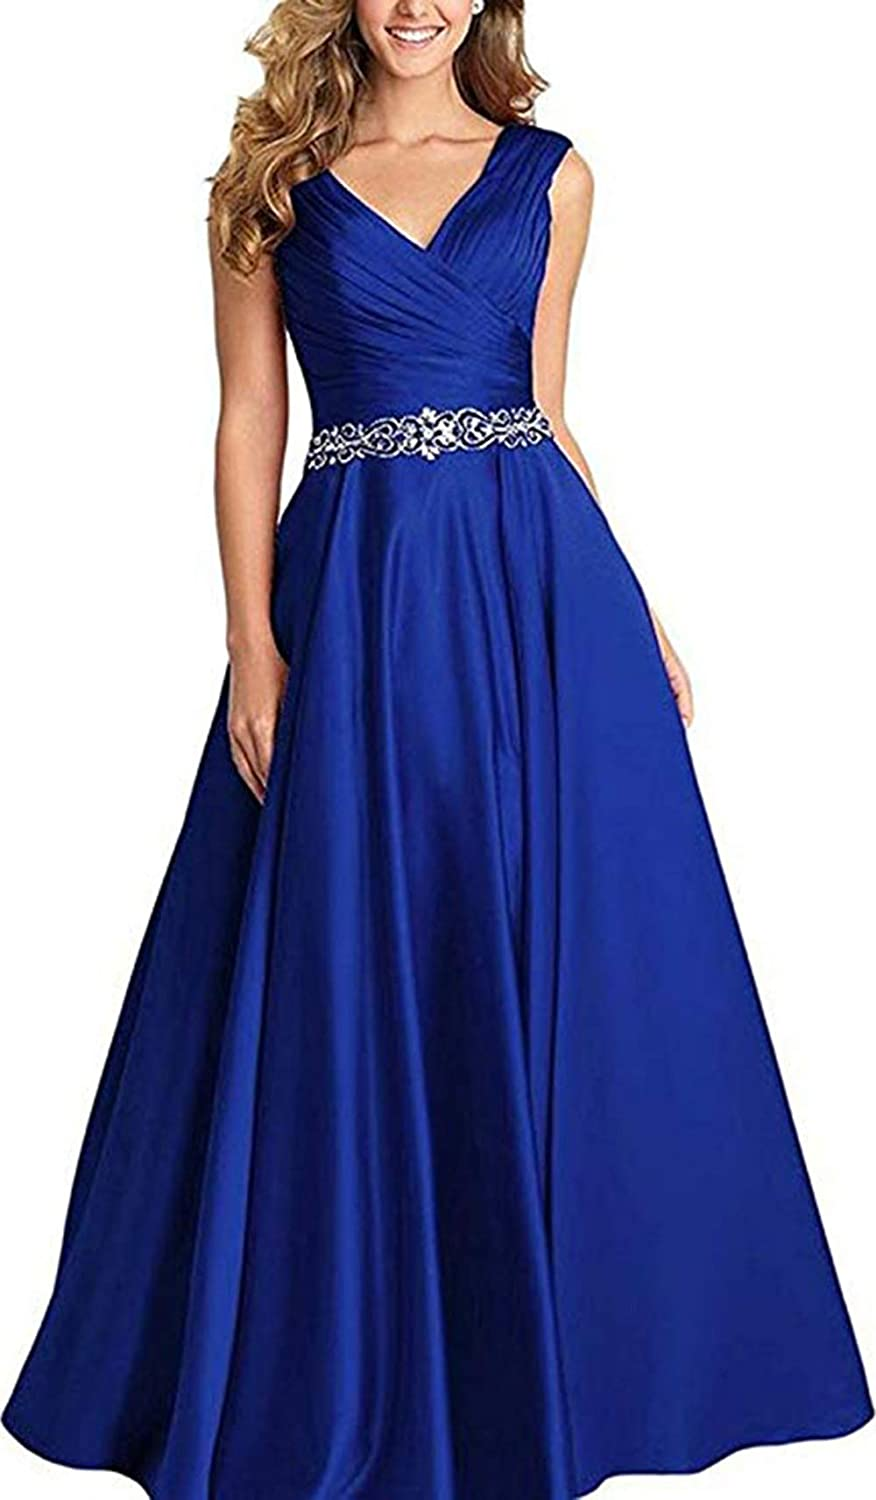 Royal bluee Ri Yun Women's V Neck Pleated Beaded Prom Dresses Long 2019 Satin Aline Formal Evening Ball Gowns with Pockets